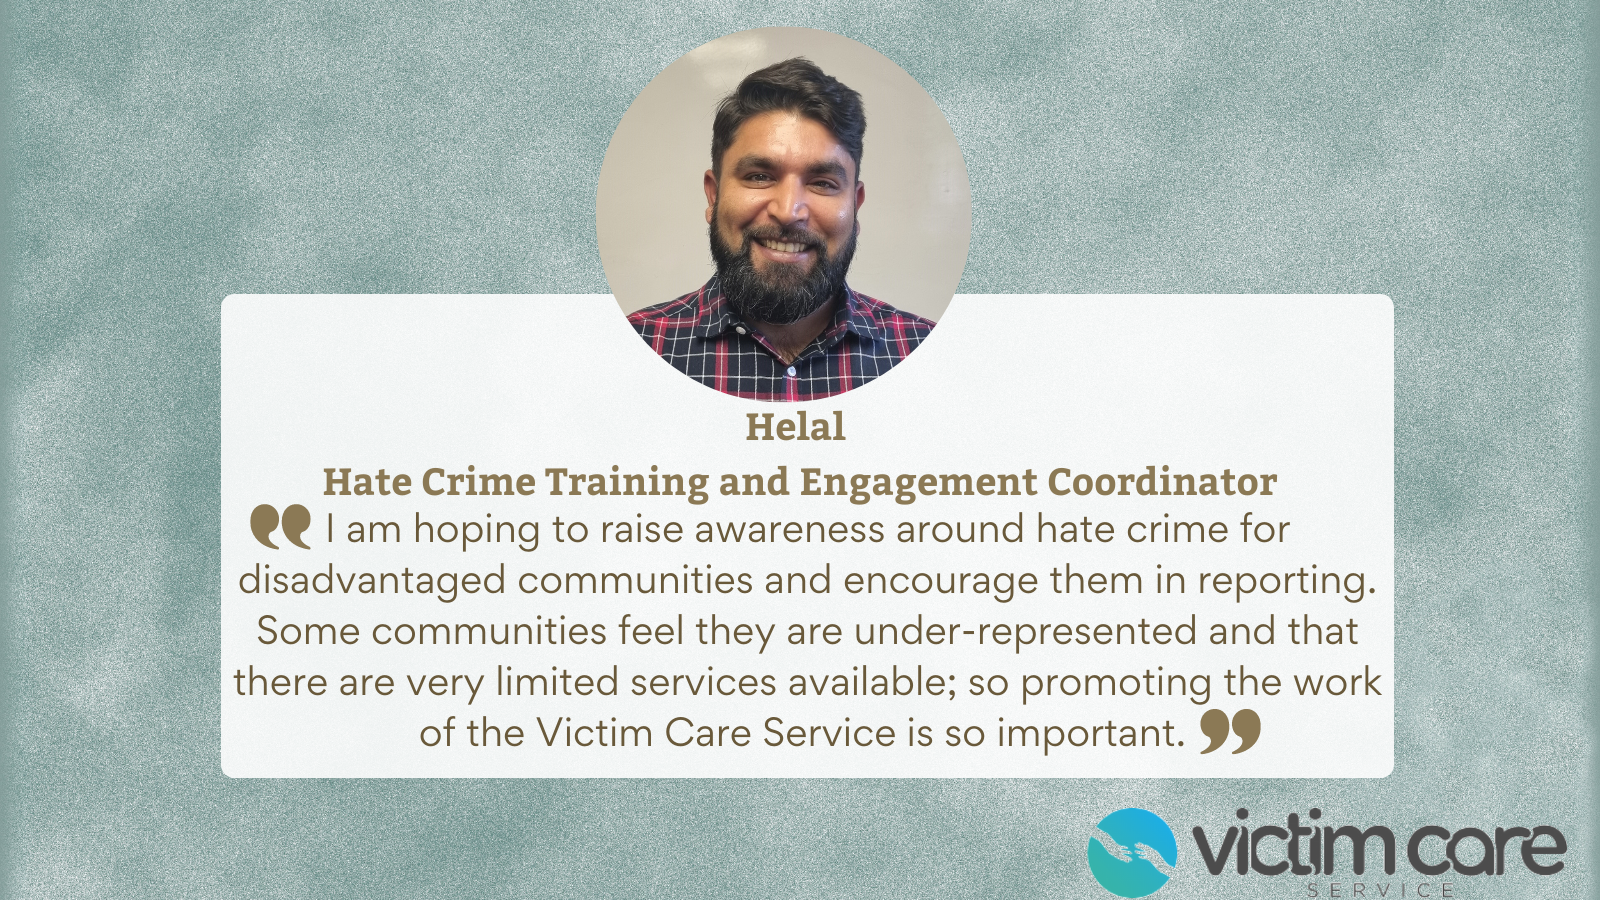 A photo of our new Hate Crime training and Engagement Coordinator with a quote about his role